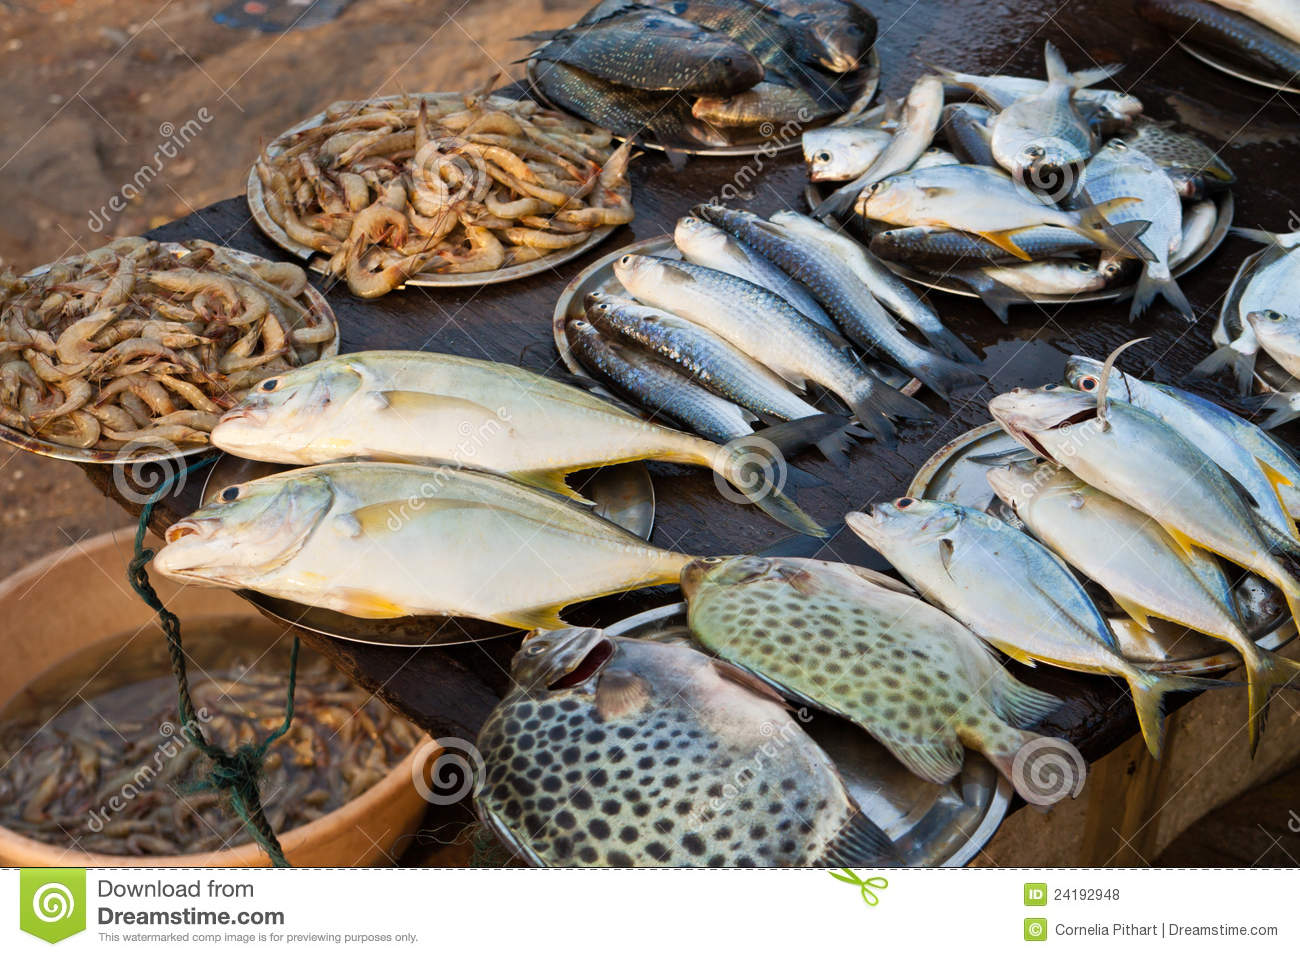 Fish market in kerala india stock photo image of for Fish stocking prices